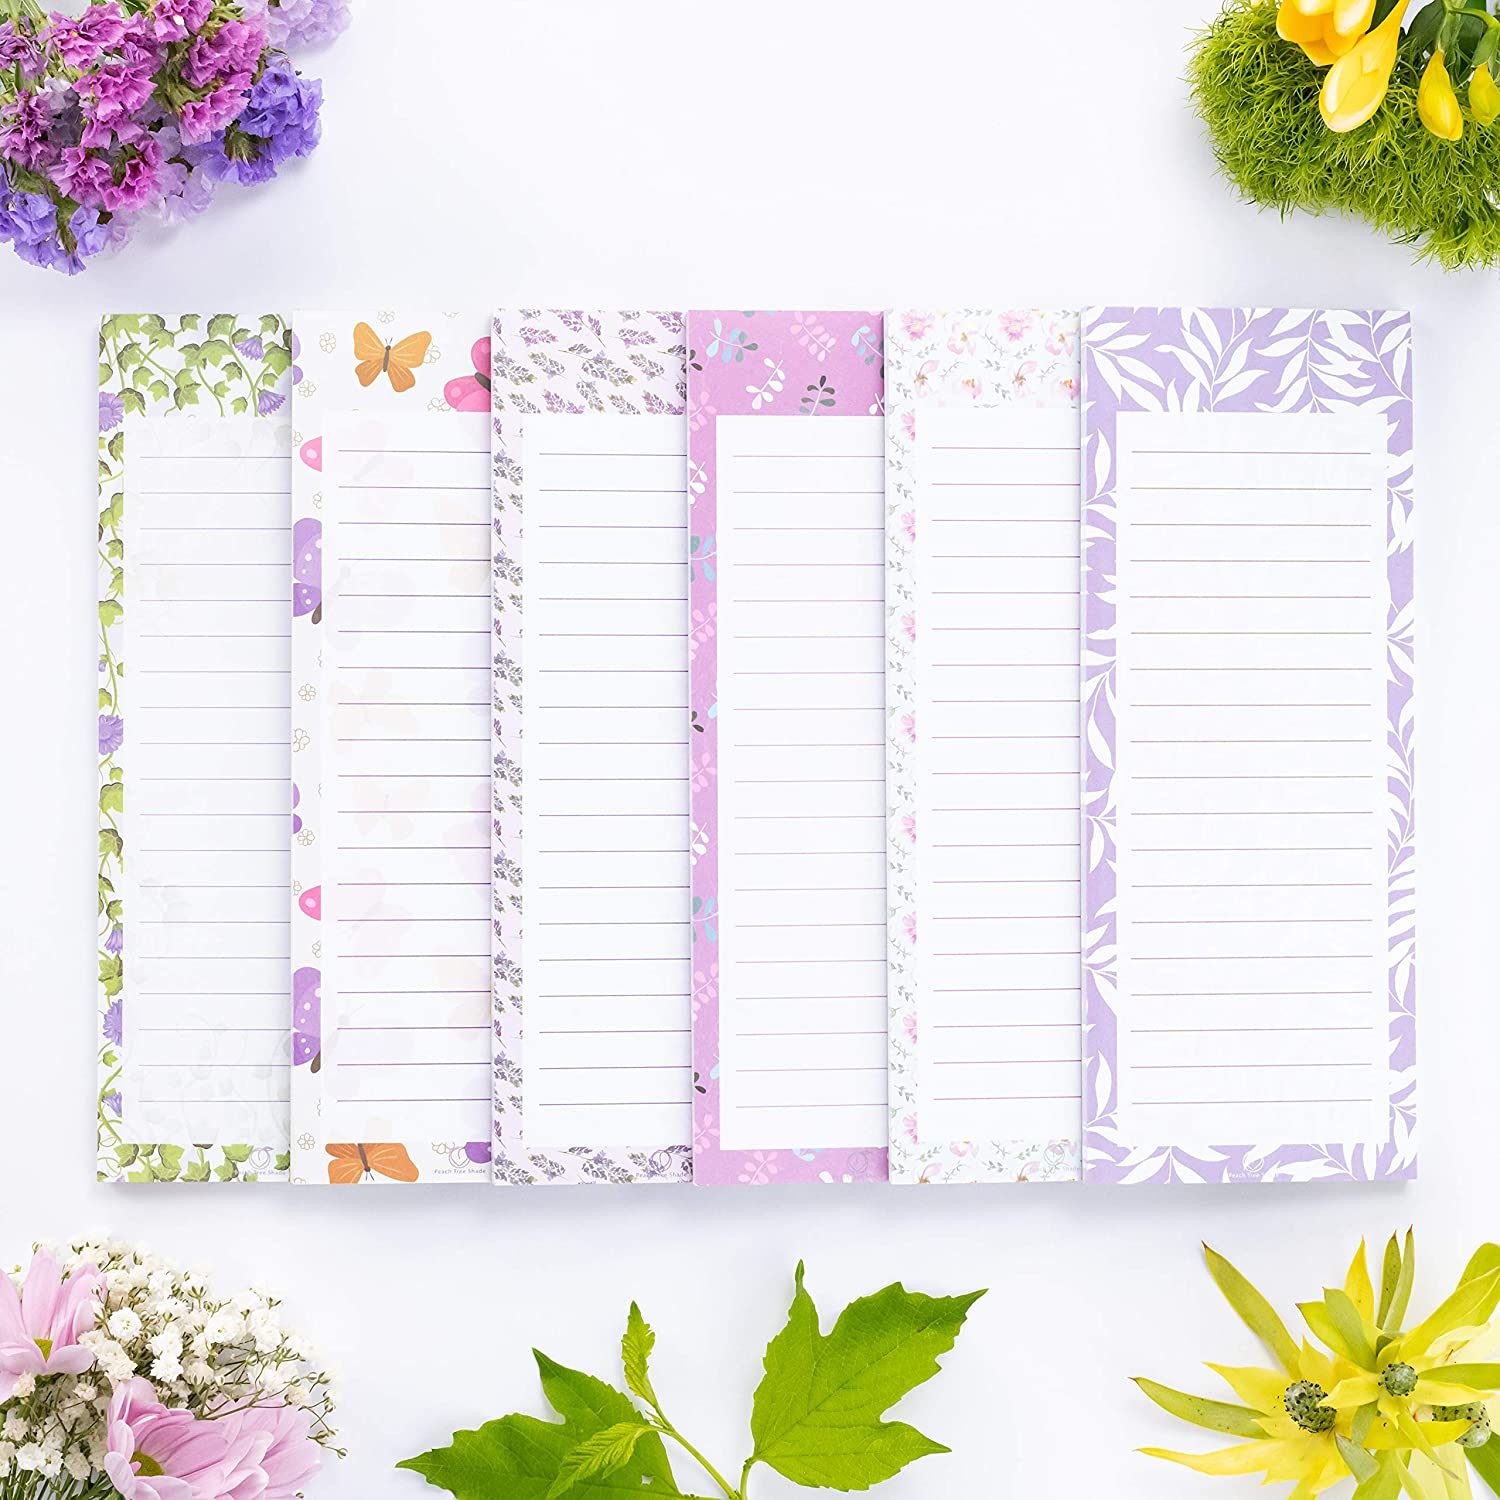 """Peach Tree Shade Magnetic Notepads, 6-Pack 60 Sheets Per Pad 3.5"""" x 9"""", for Fridge, Kitchen, Shopping, Grocery, To-Do List, Memo, Reminder, Note, Book, Stationery, (Ivynotes - Ivy Forest)"""